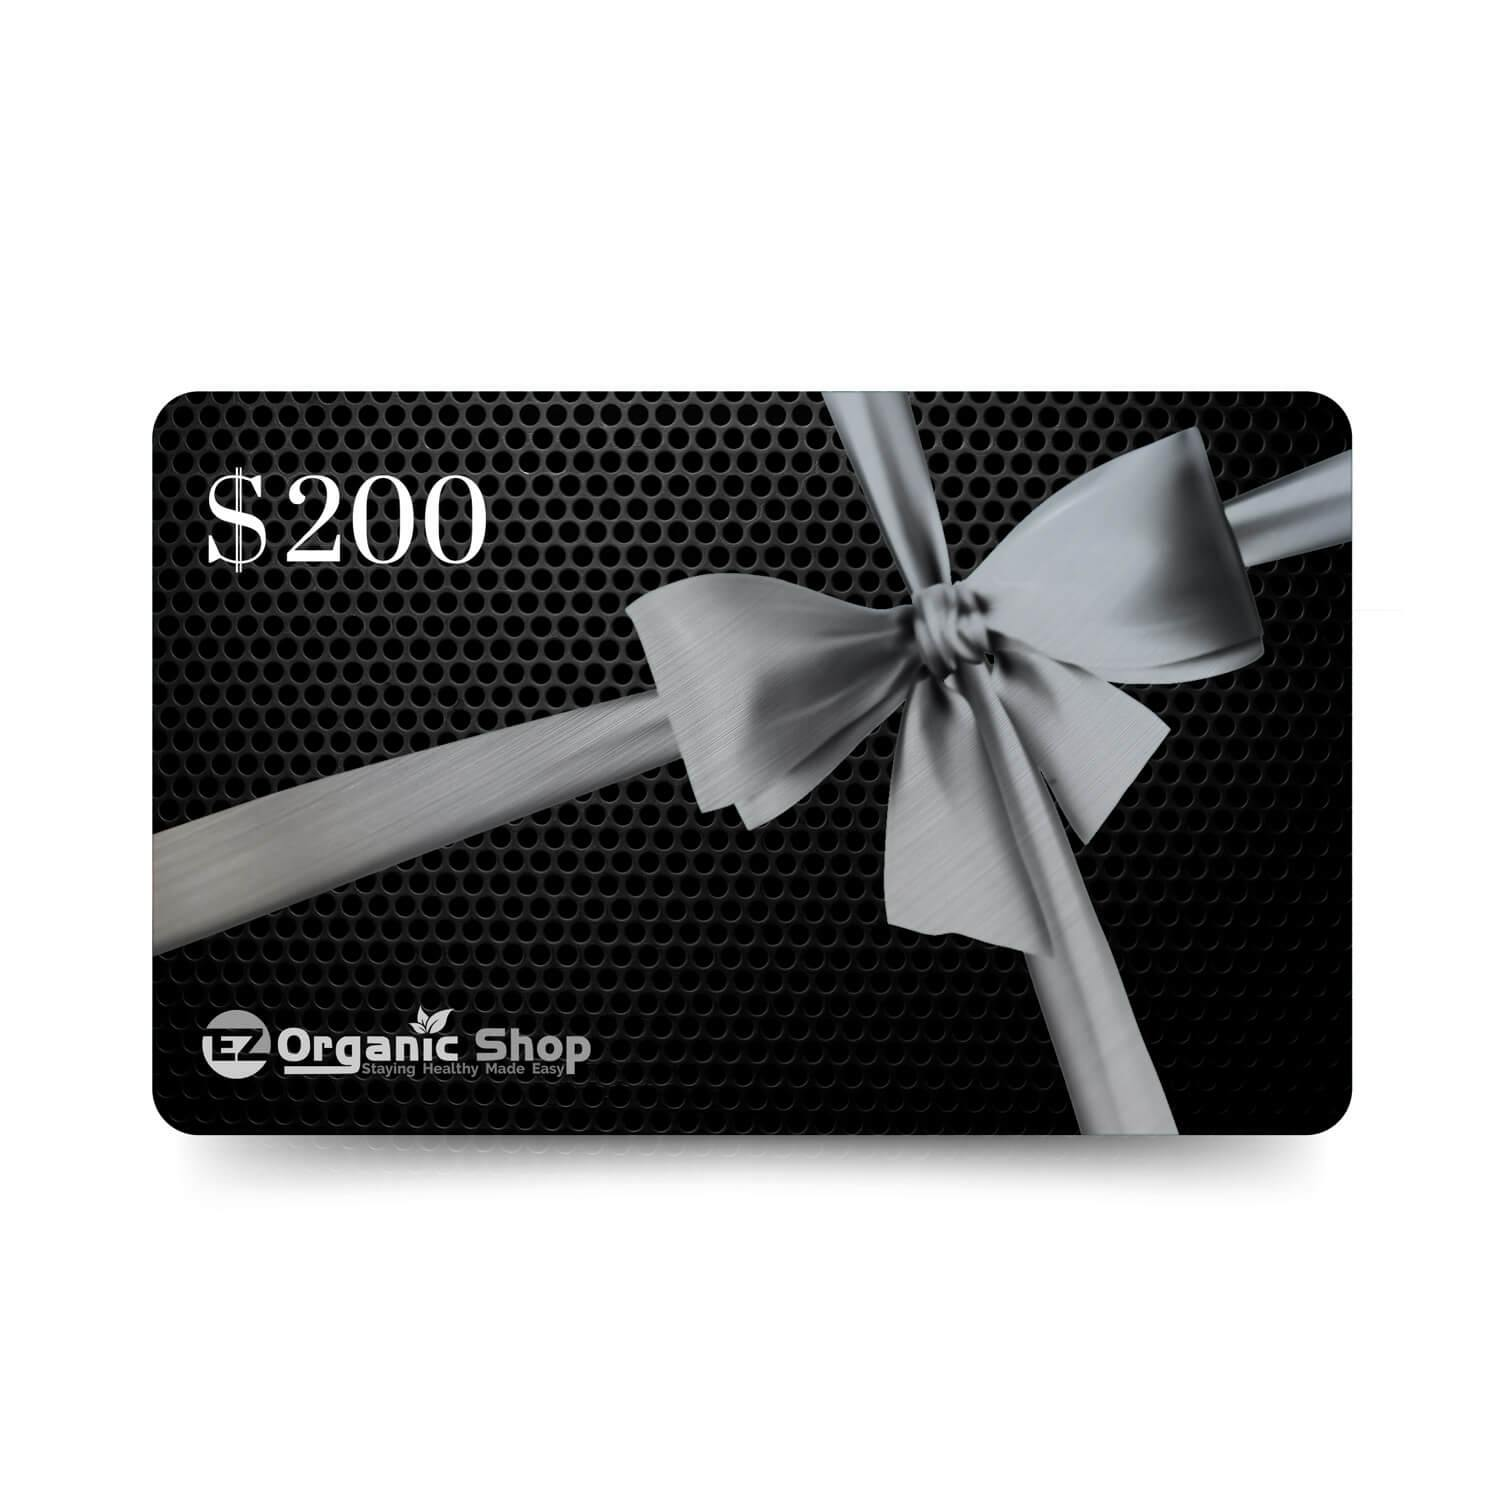 EZ Organic Shop $200 Gift Card - EZ Organic Shop